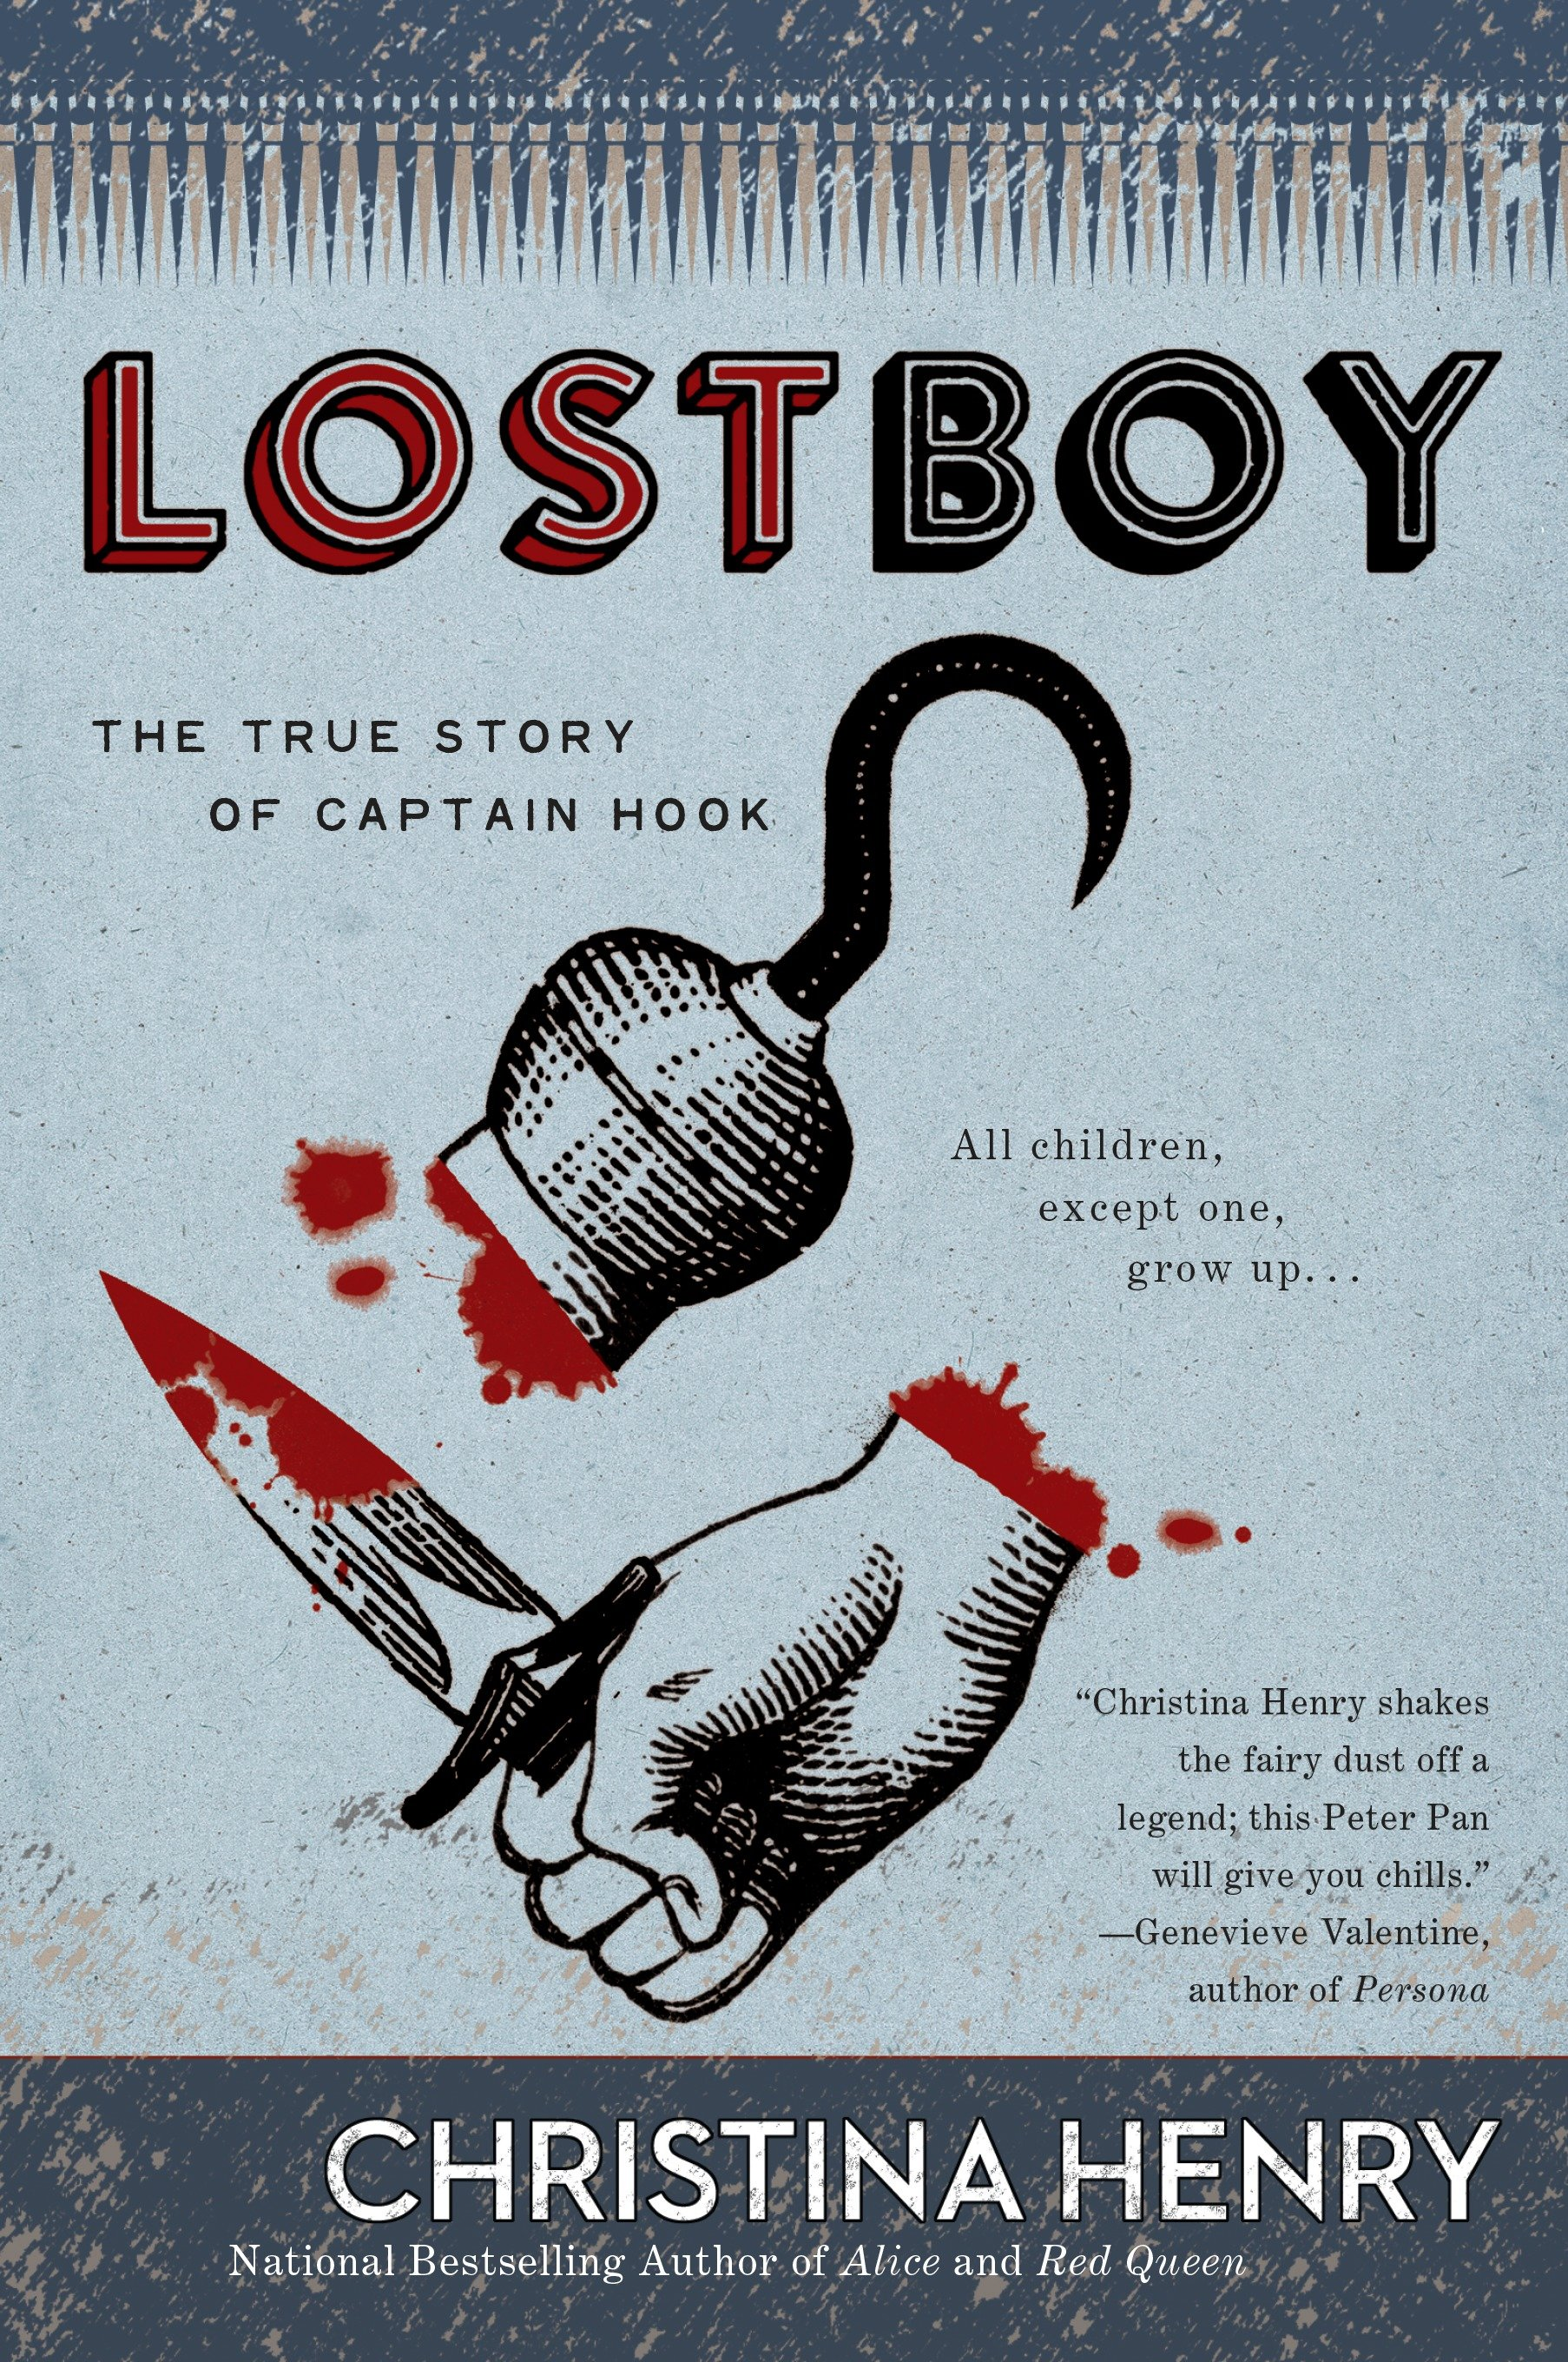 Lost Boy The True Story of Captain Hook